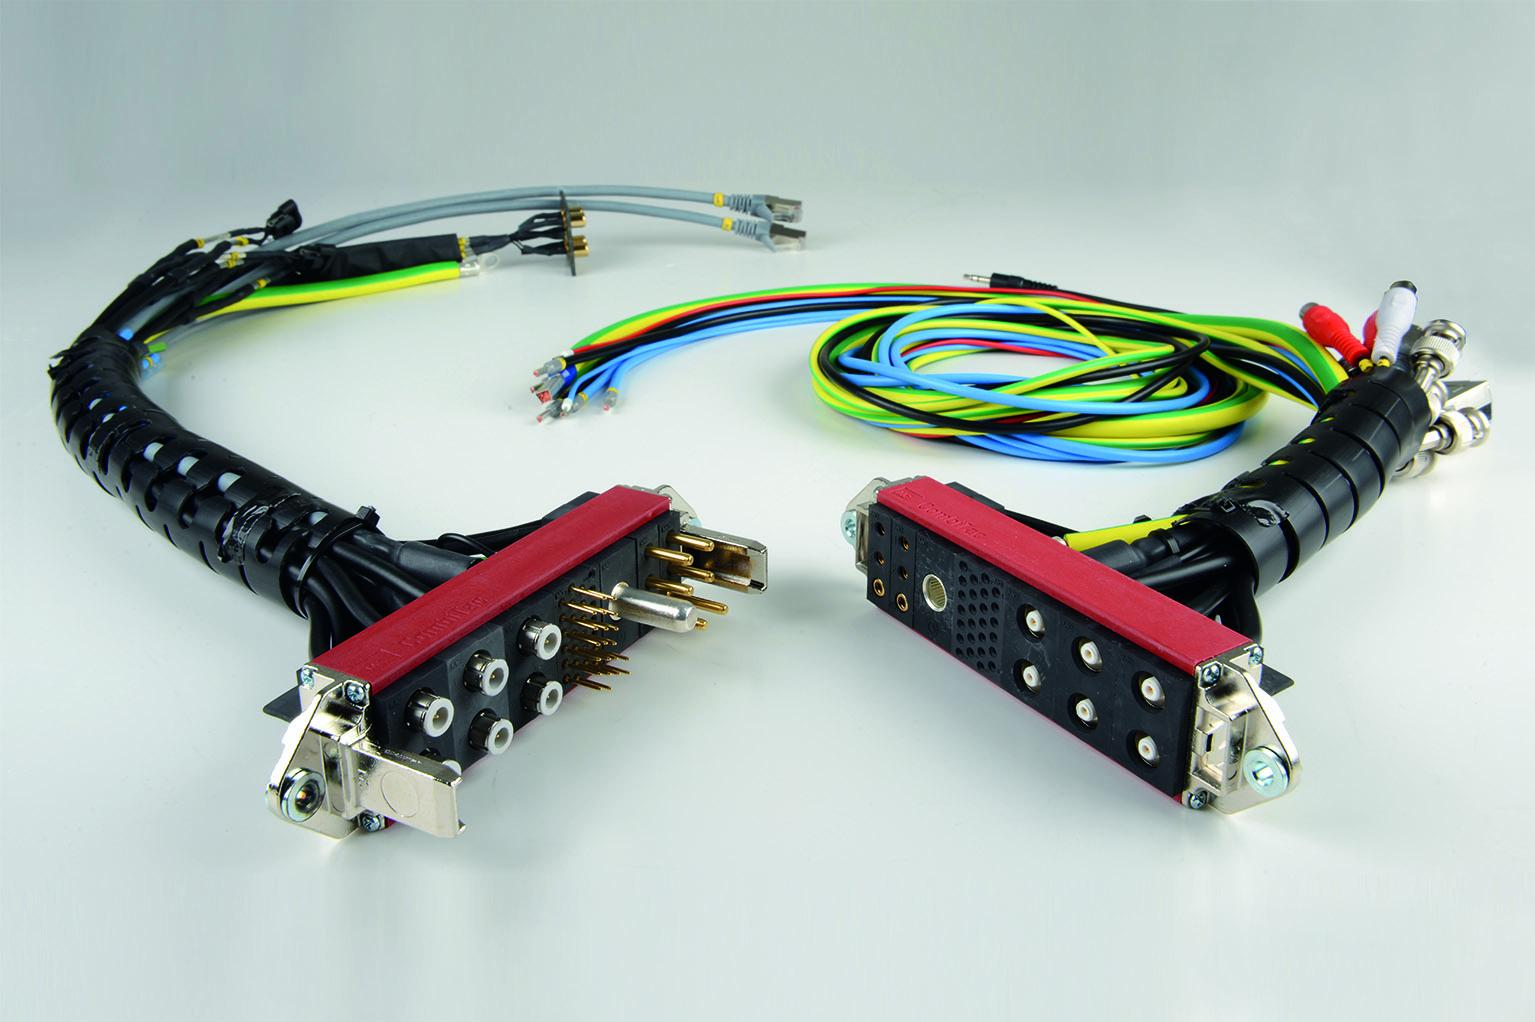 The complete CombiTac solution, including cable assembly